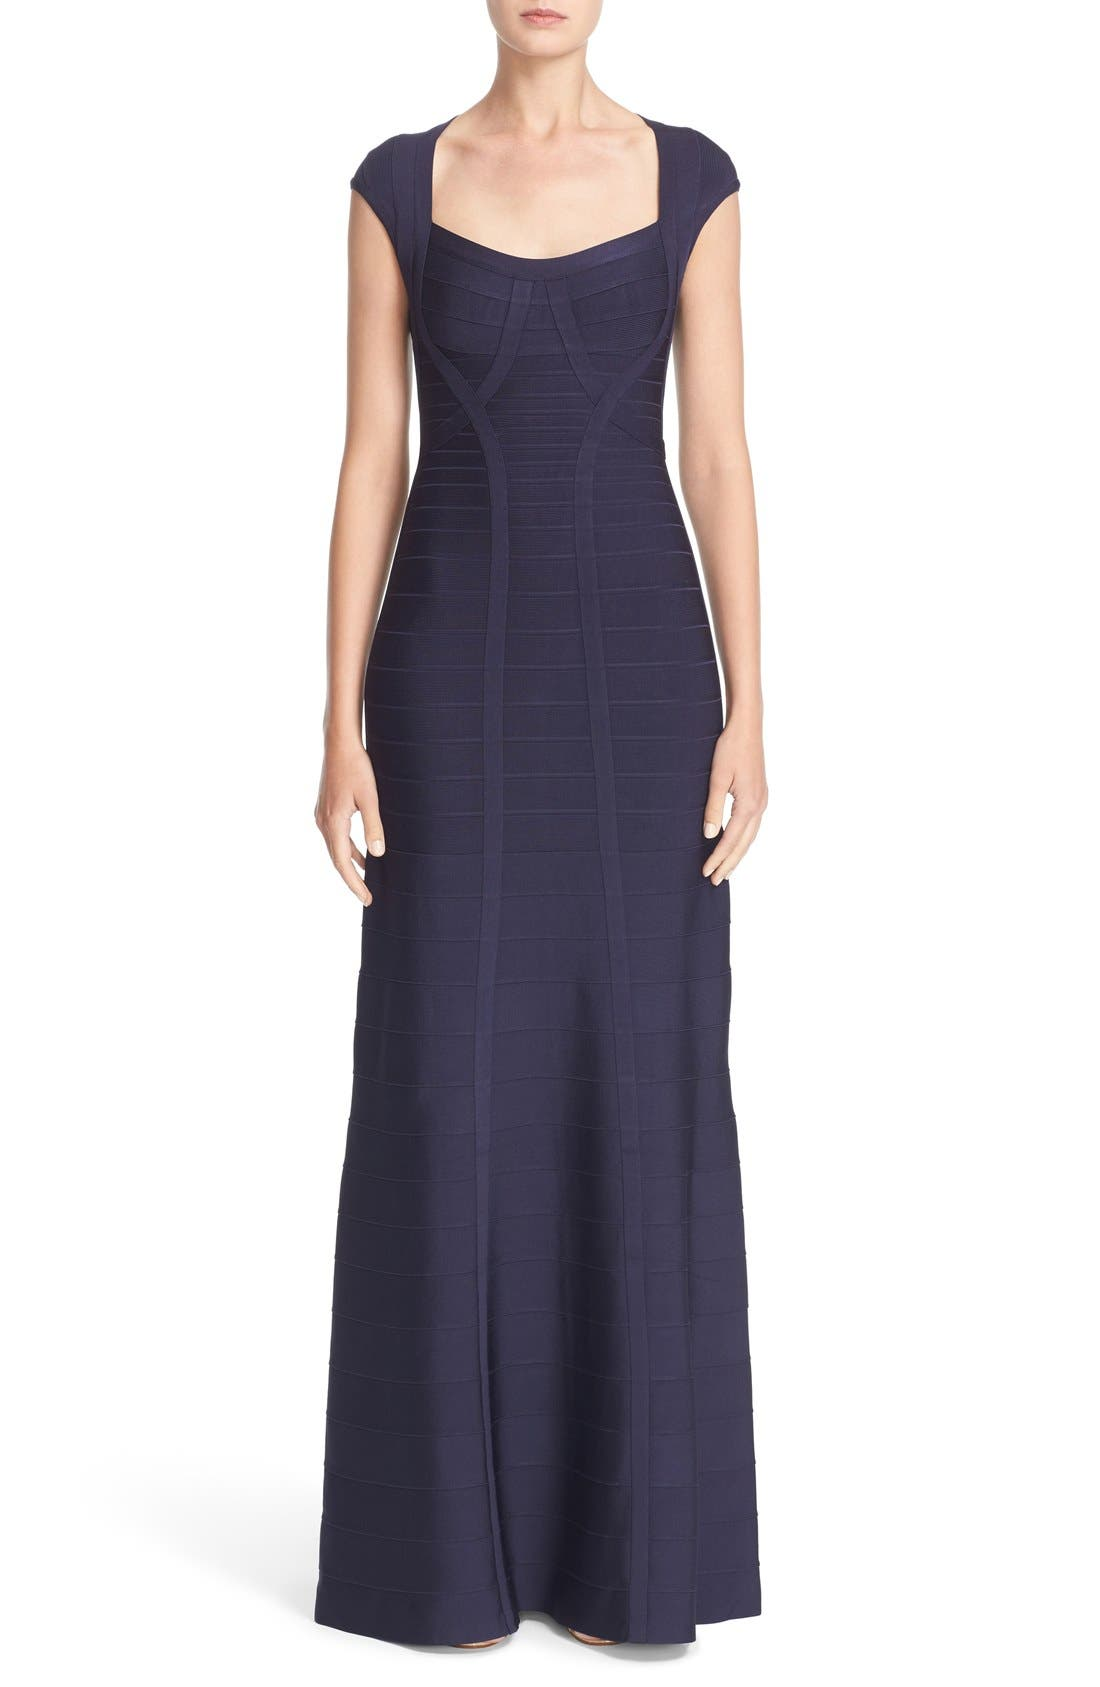 HERVE LEGER 'Catarina' Mermaid Bandage Gown, Main, color, 419